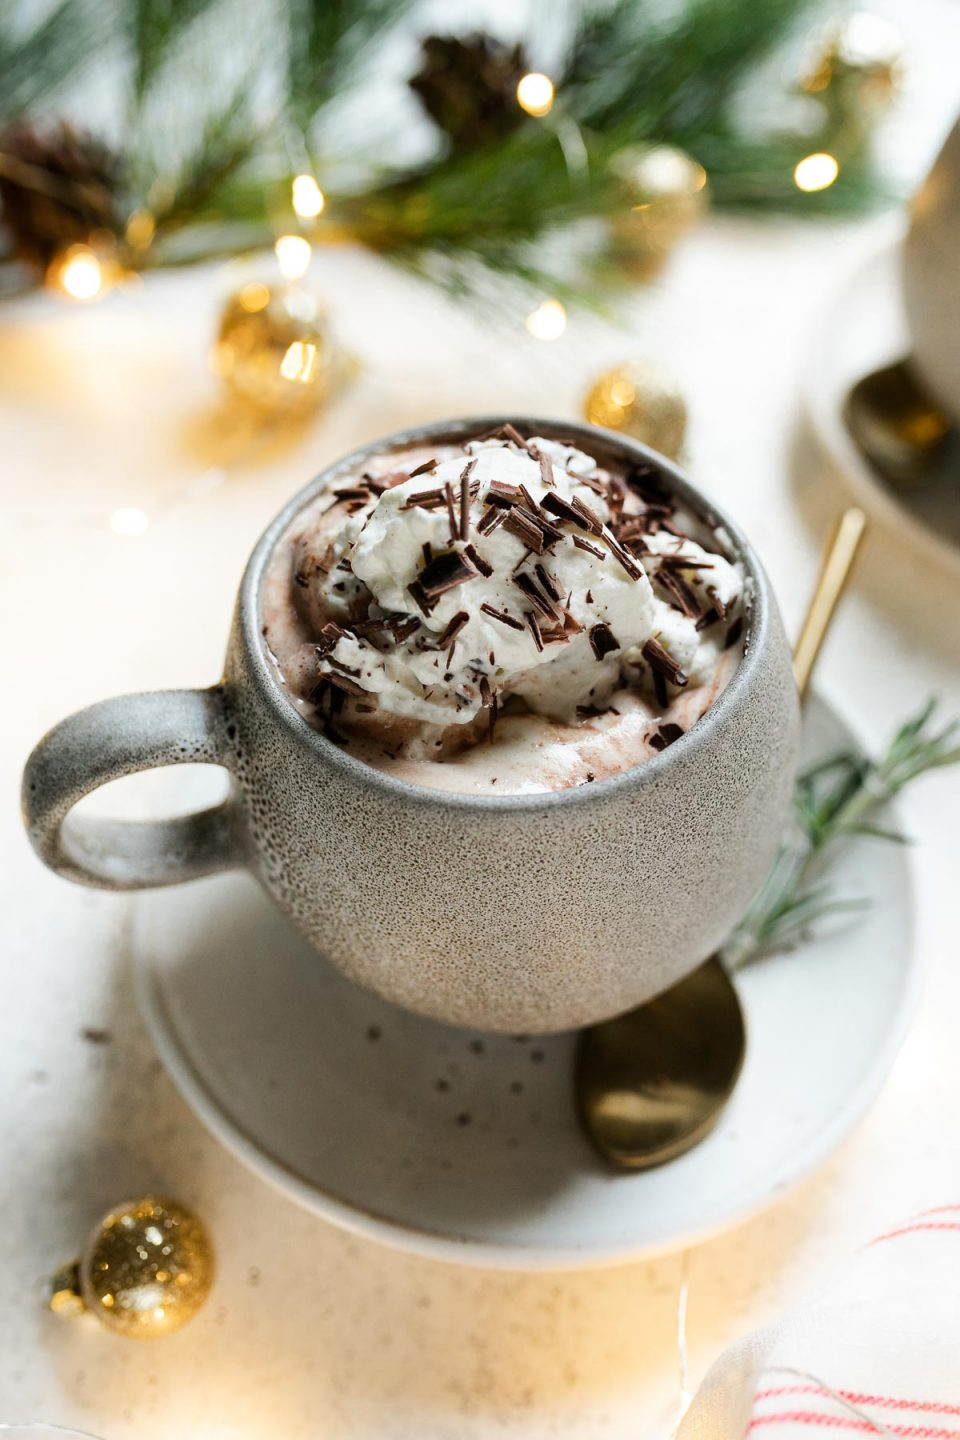 Christmas hot chocolate shown in a gray mug, which sit atop a white saucers. The cocoa is topped with freshly whipped cream & shaved chocolate. The saucer sit atop a white surface, next to a red & white striped linen napkin, twinkly lights, Christmas ornaments, & decorative pine tree.